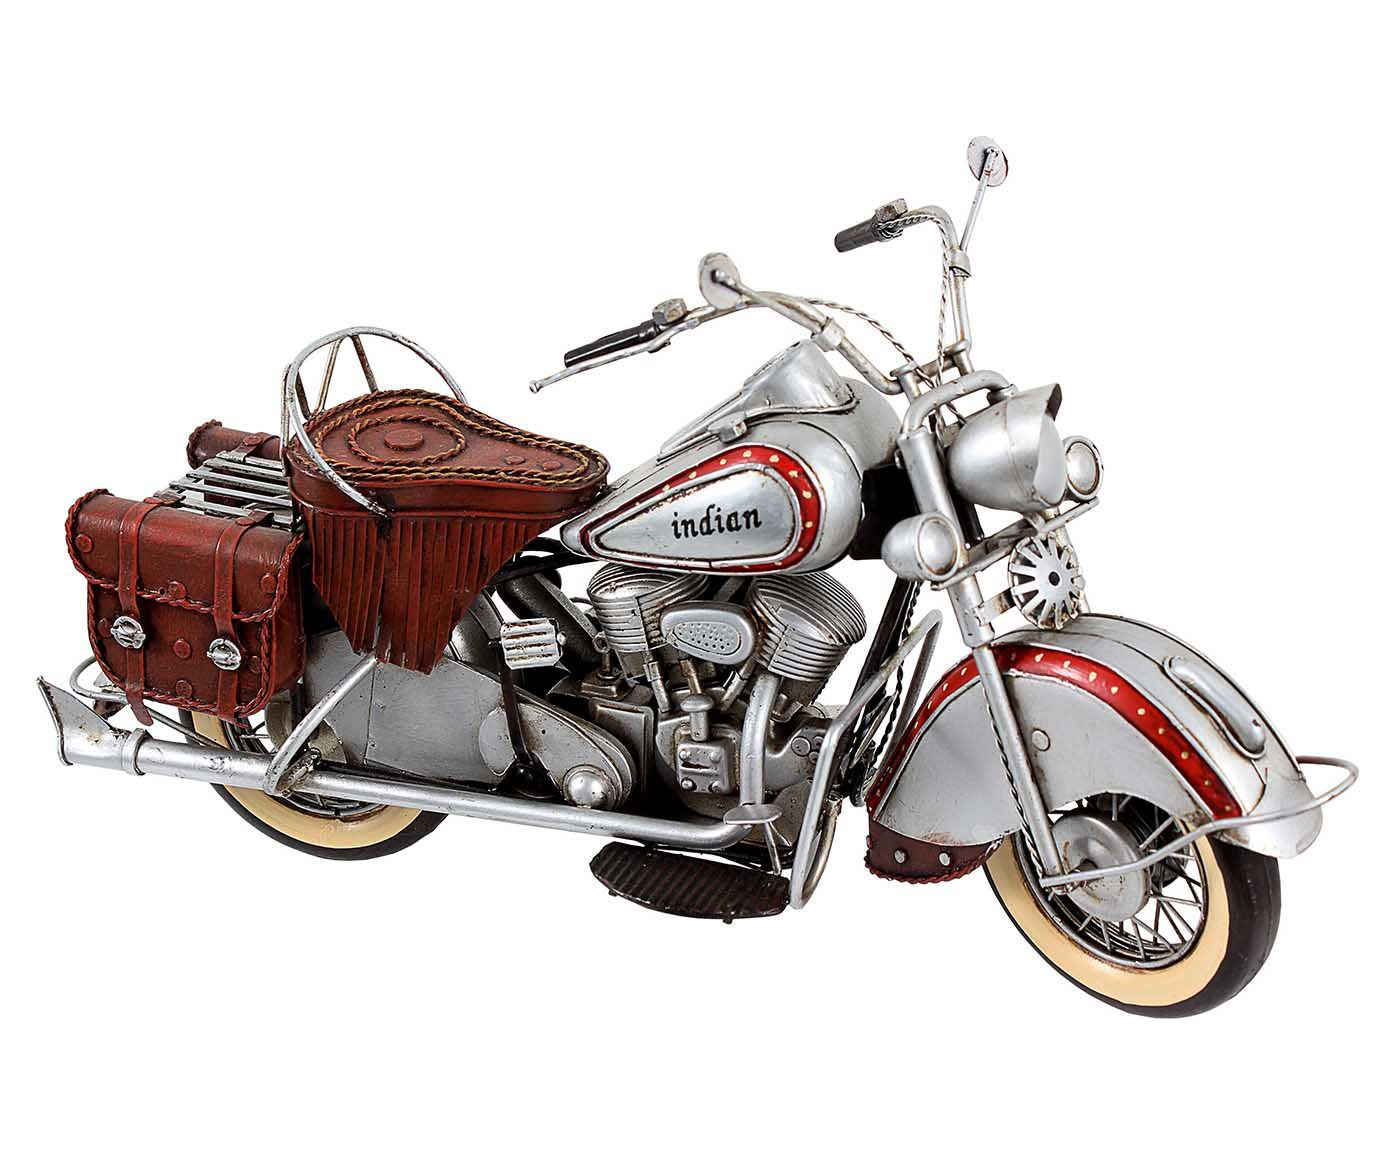 Miniatura Moto Indian Silver Oldway | Westwing.com.br